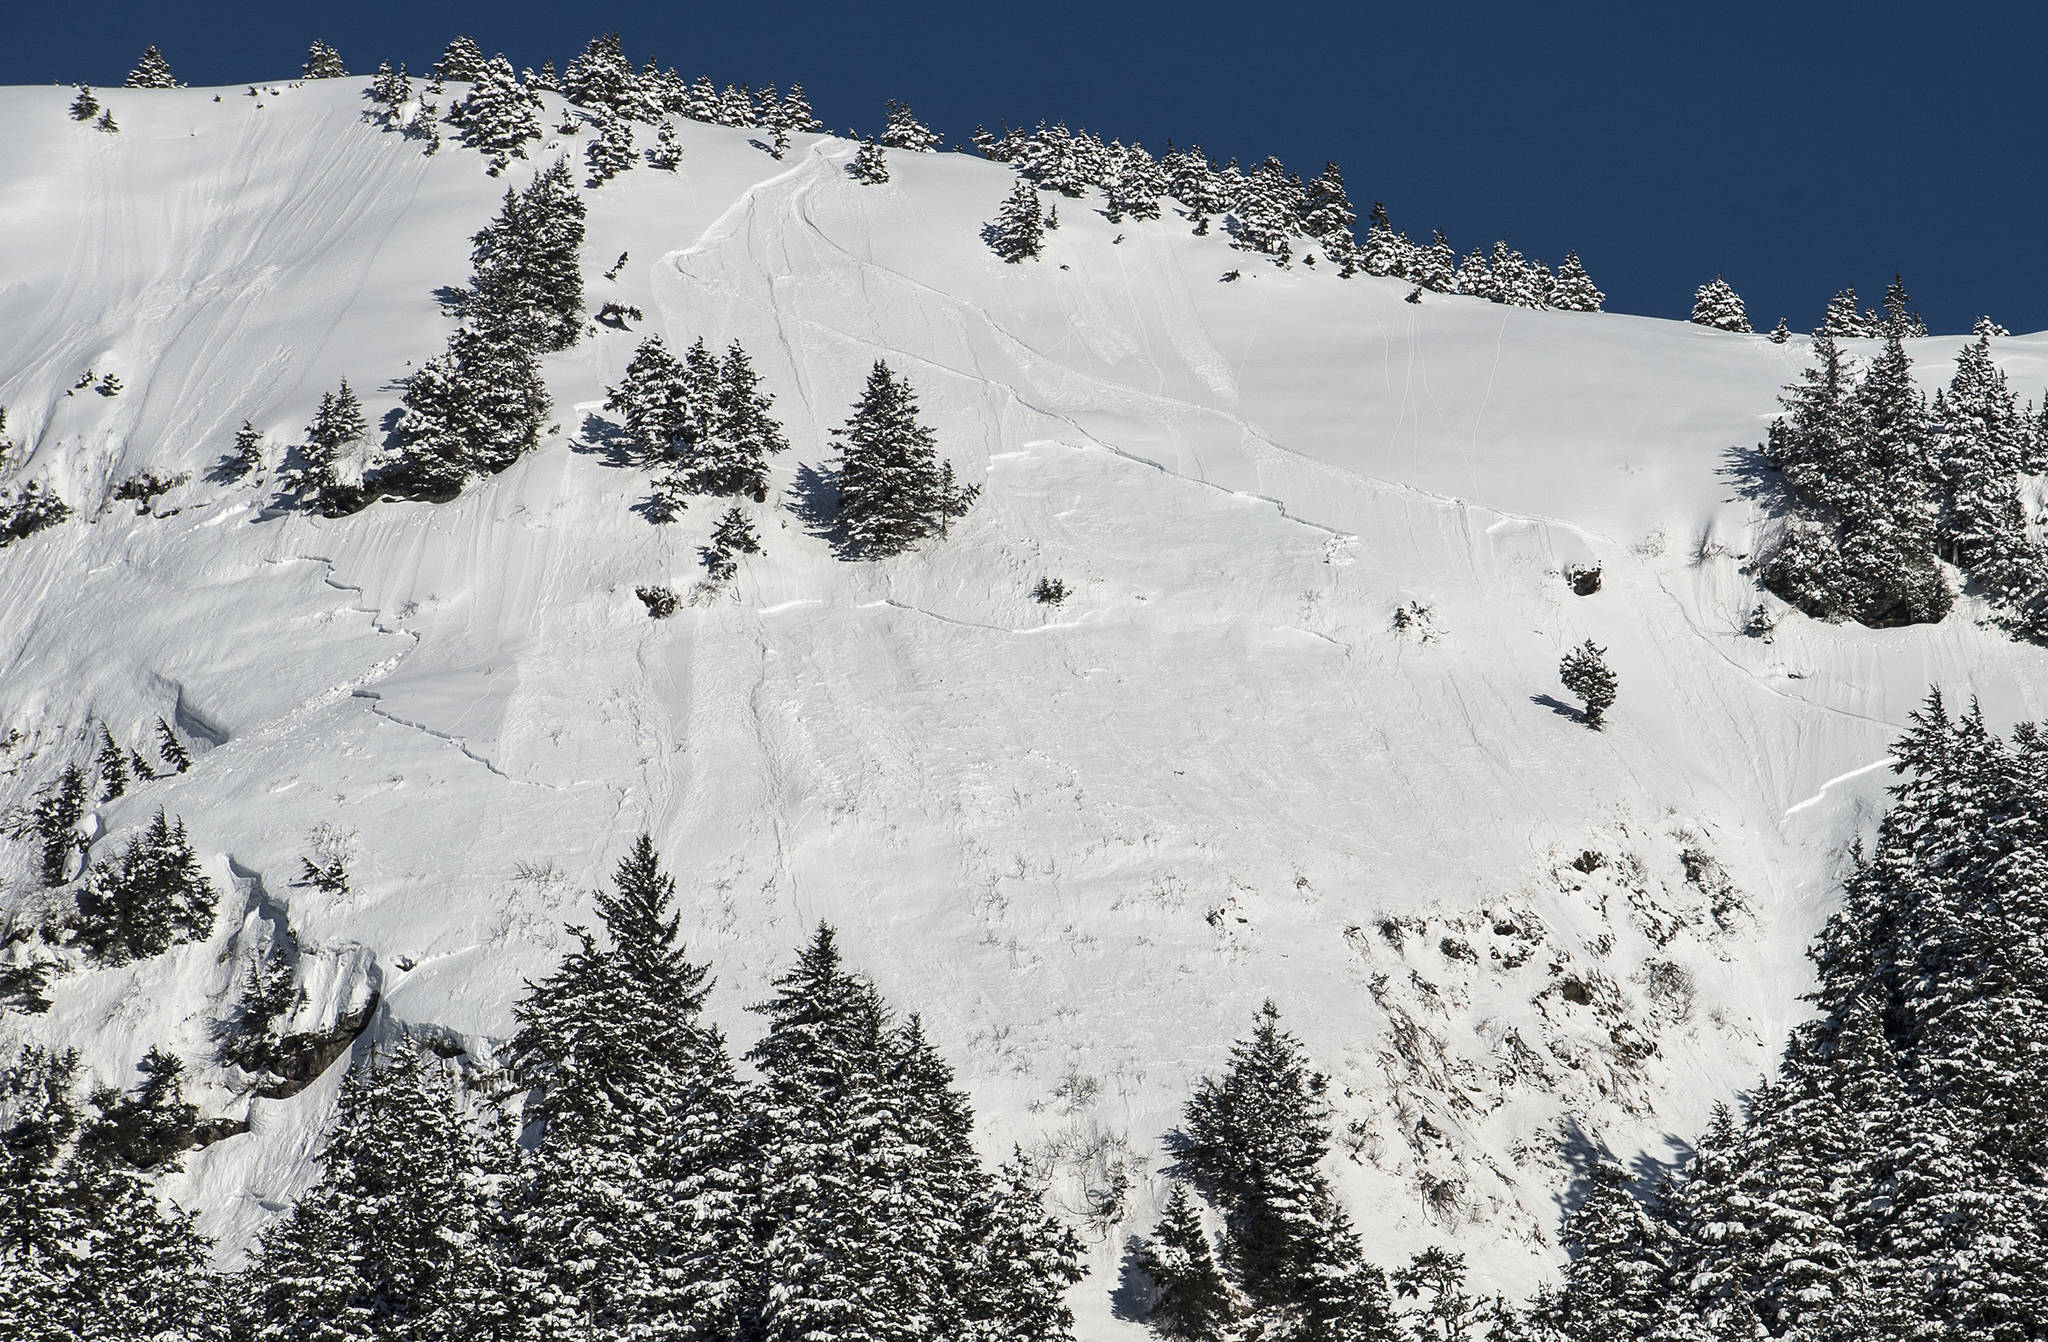 An area known as Showboat shows where a skier triggered an avalanche on Saturday, March 4, 2017. He was taken to Bartlett Regional Hospital. The area is outside of the Eaglecrest Ski Area boundary.